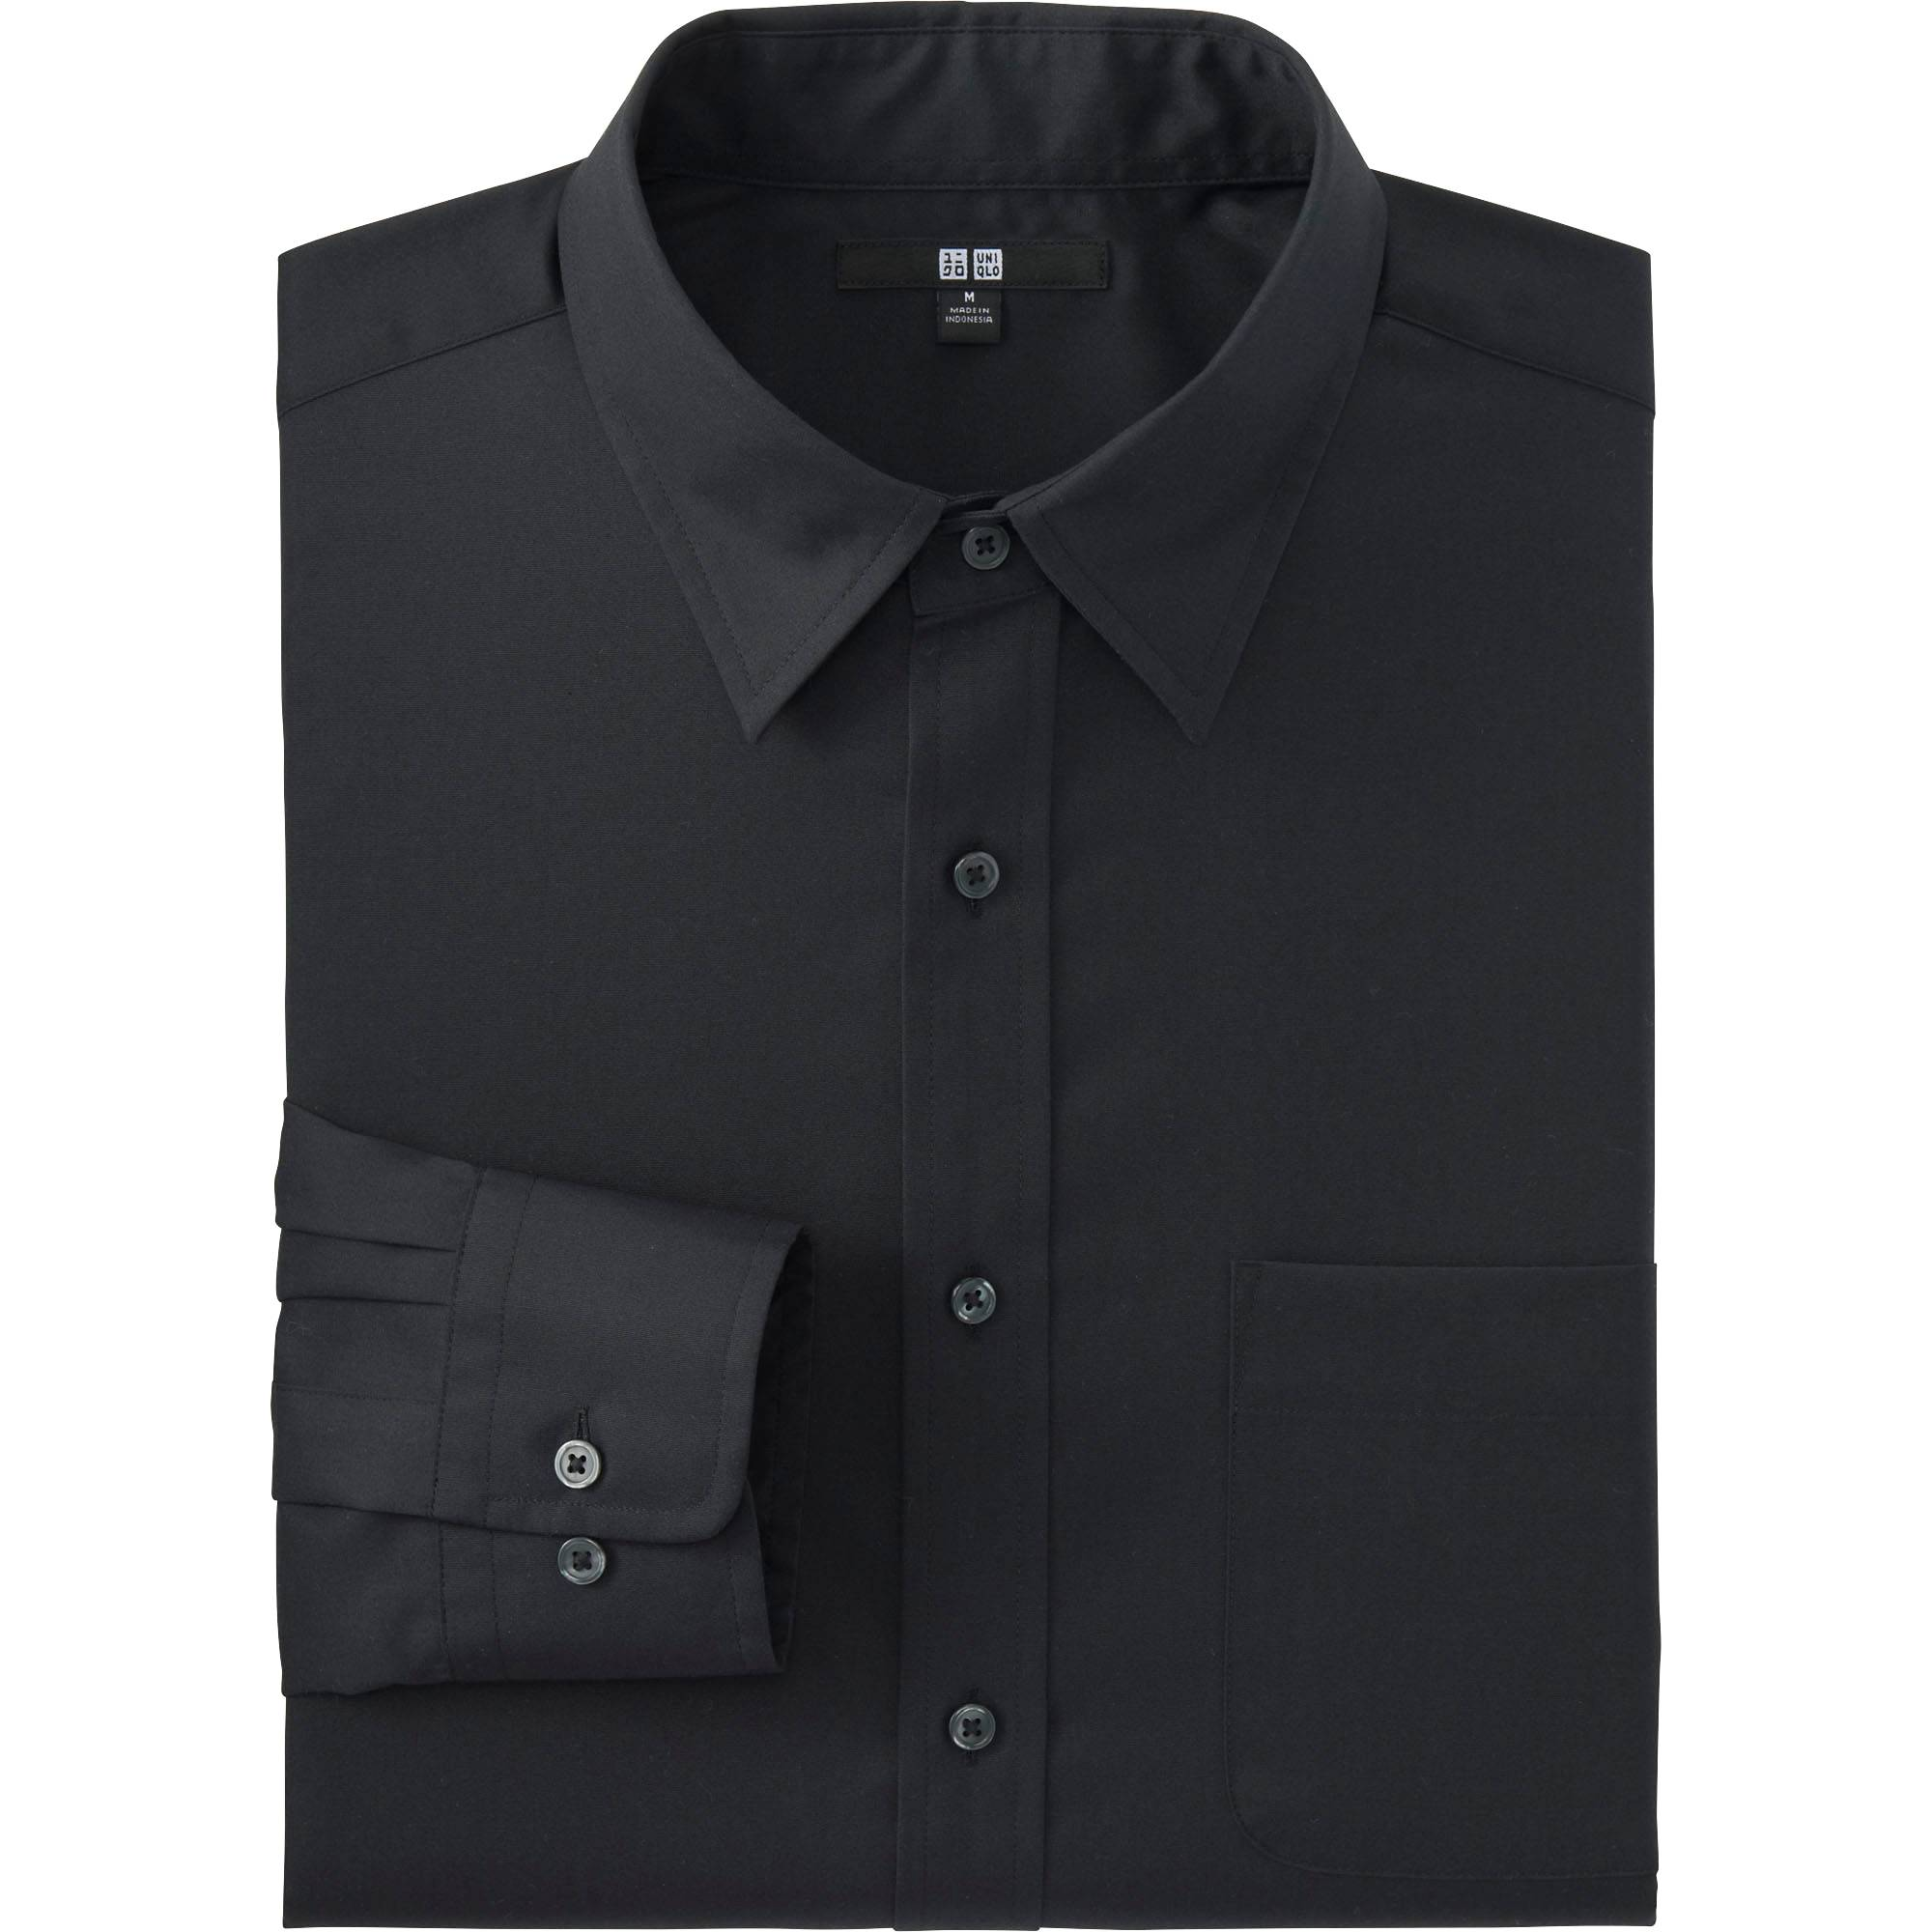 Men Easy Care Broadcloth Dress Shirt | UNIQLO US